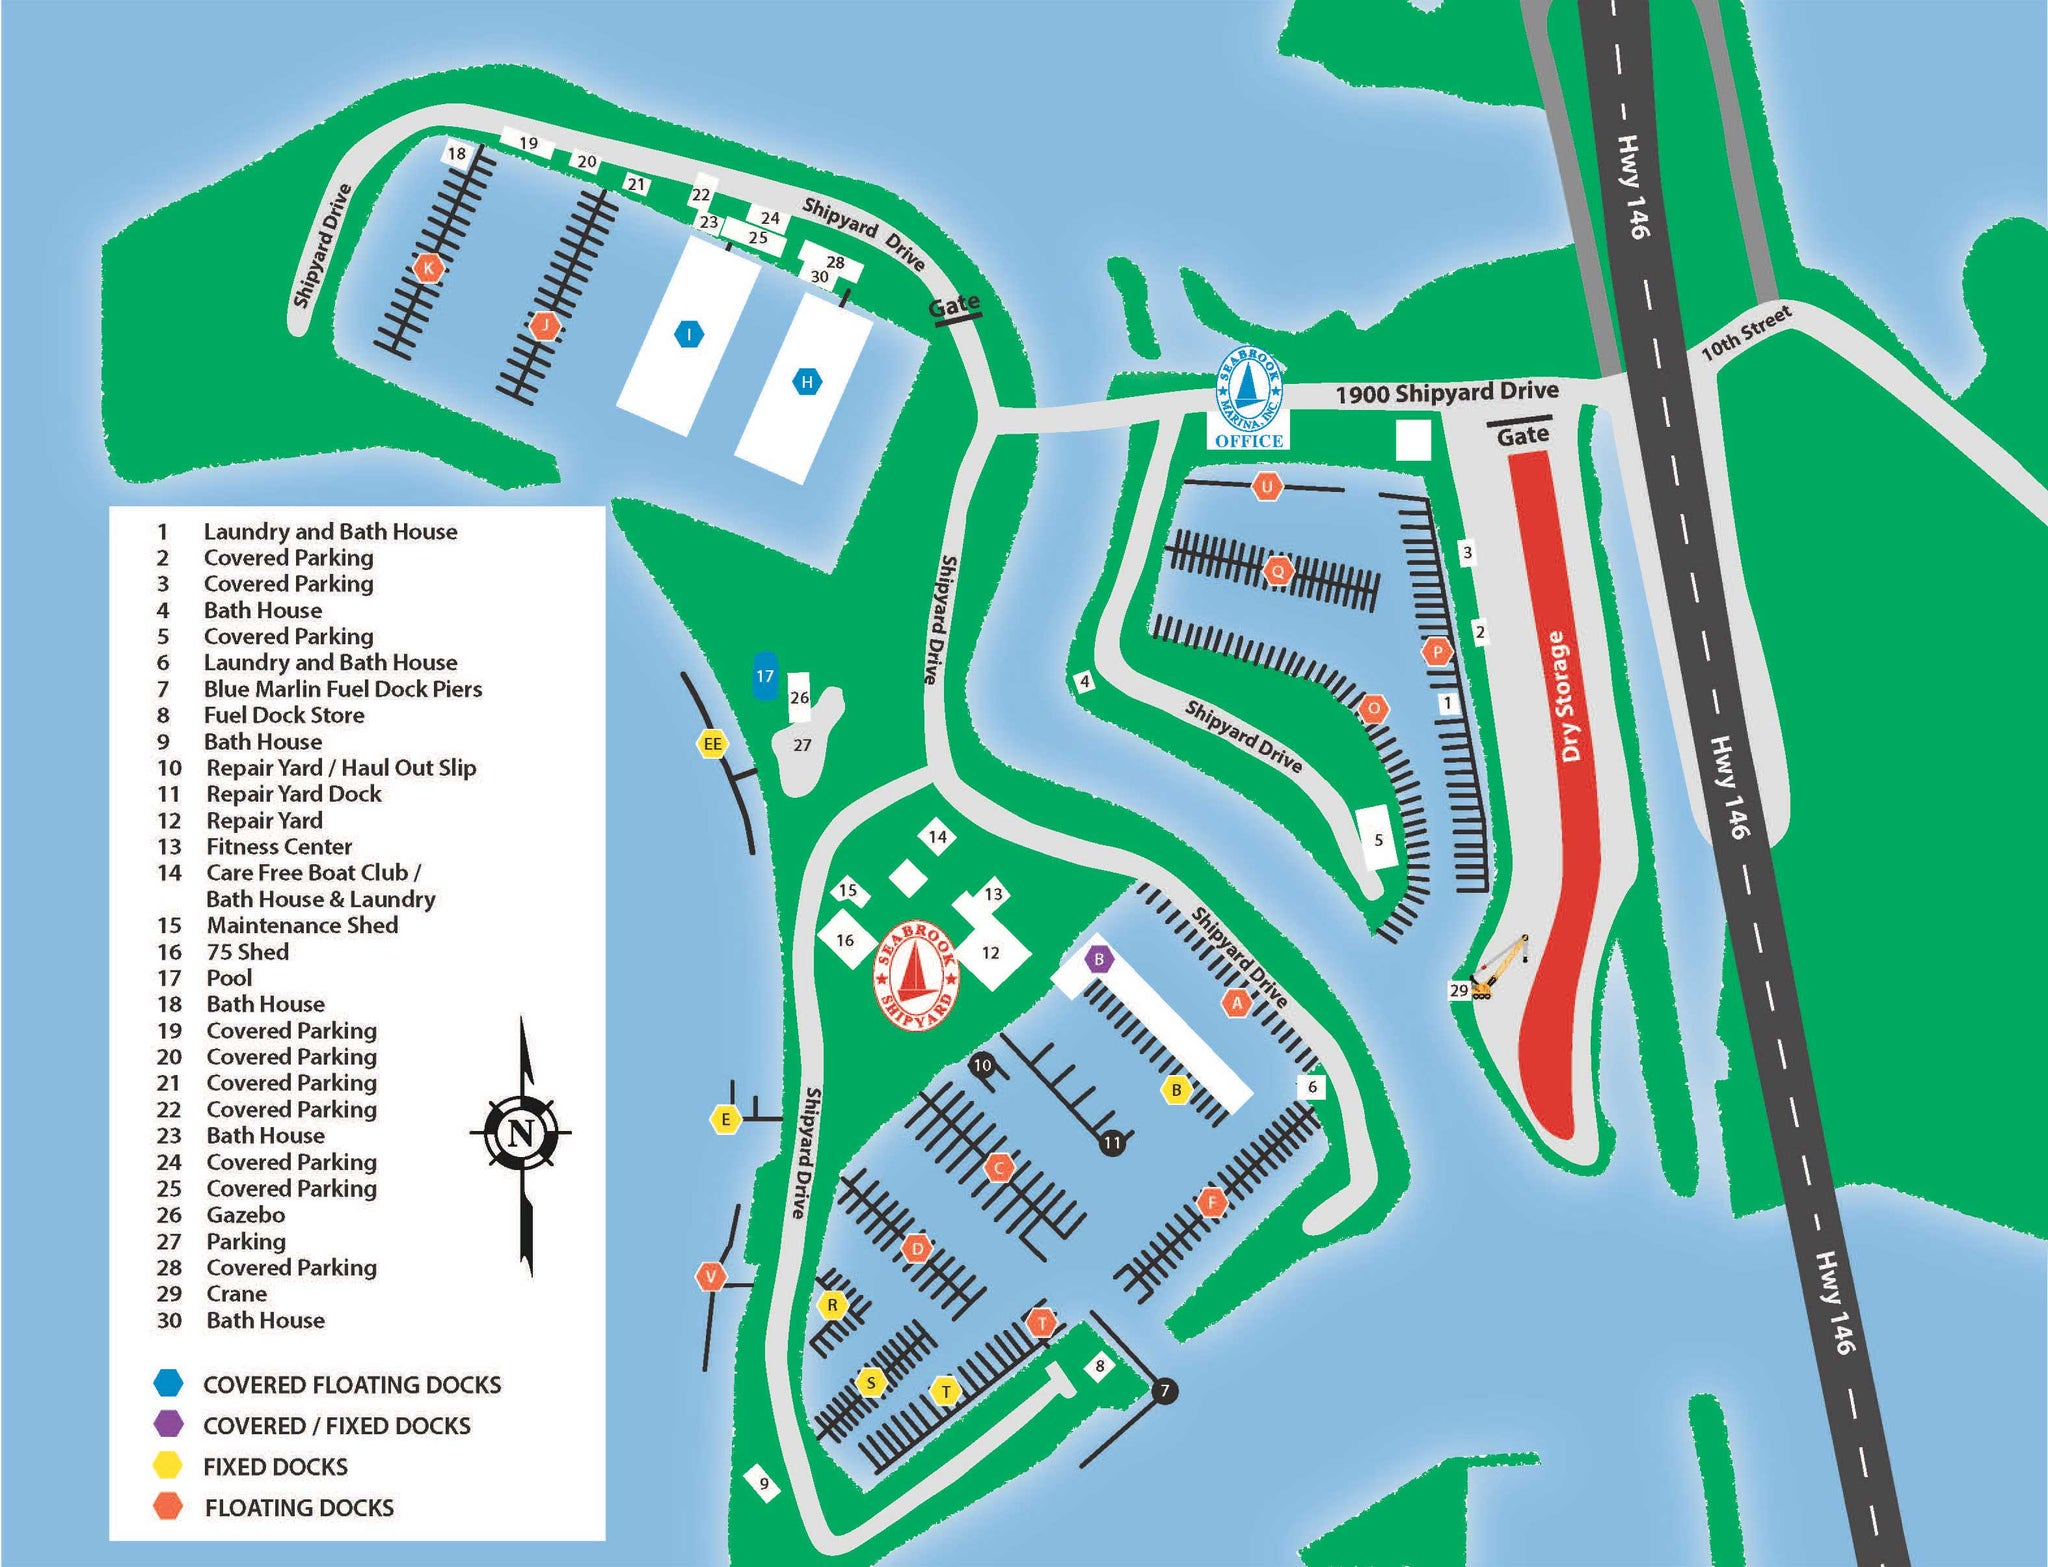 Seabrook Marina and Repair Yard Texas - Map